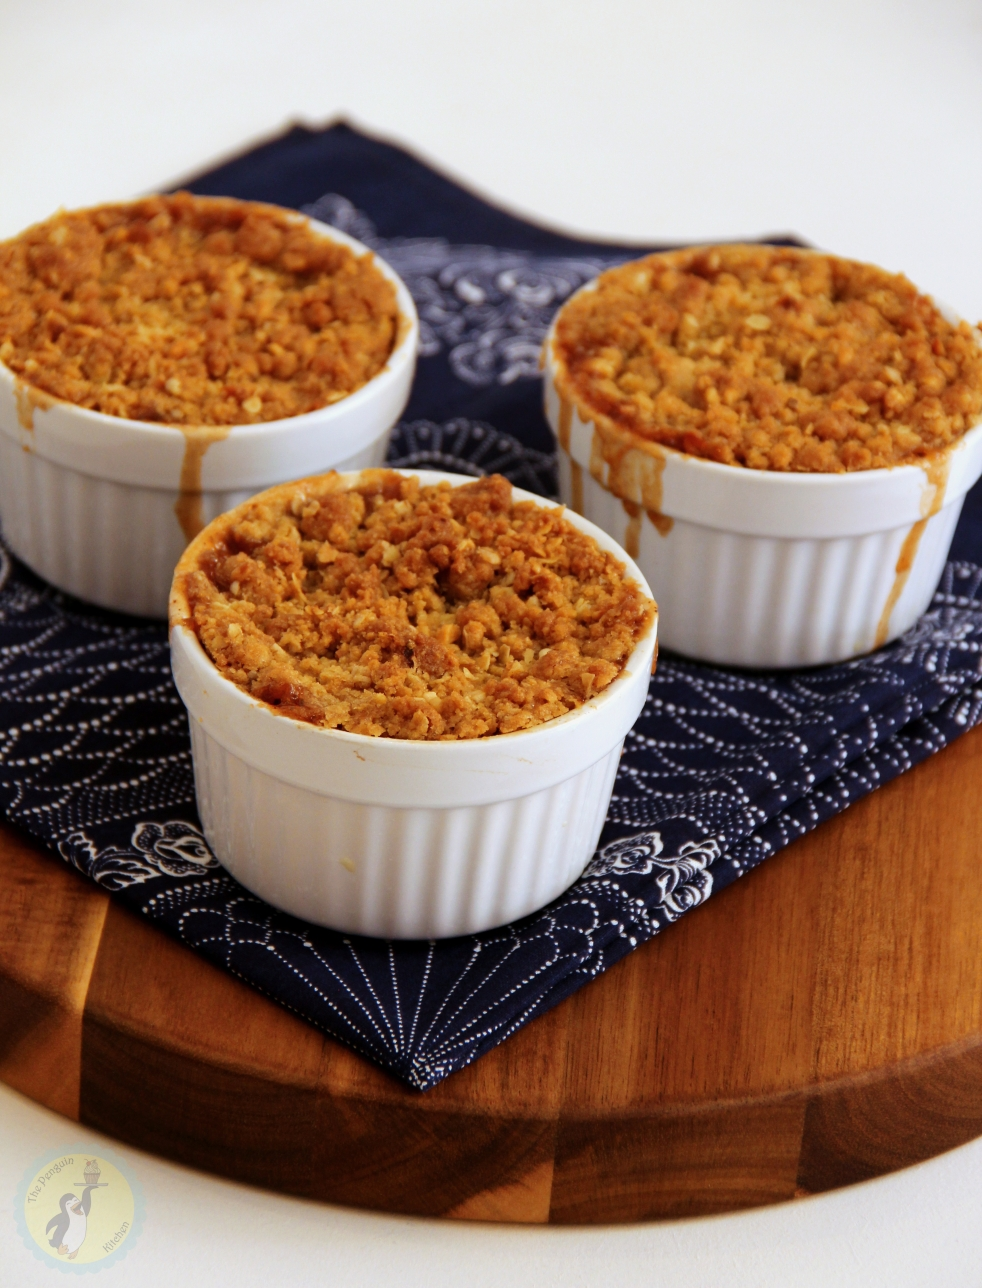 Toffee Apple Crumble - Juicy Apples with toffees under a crunchy oat and hazelnut crumble topping